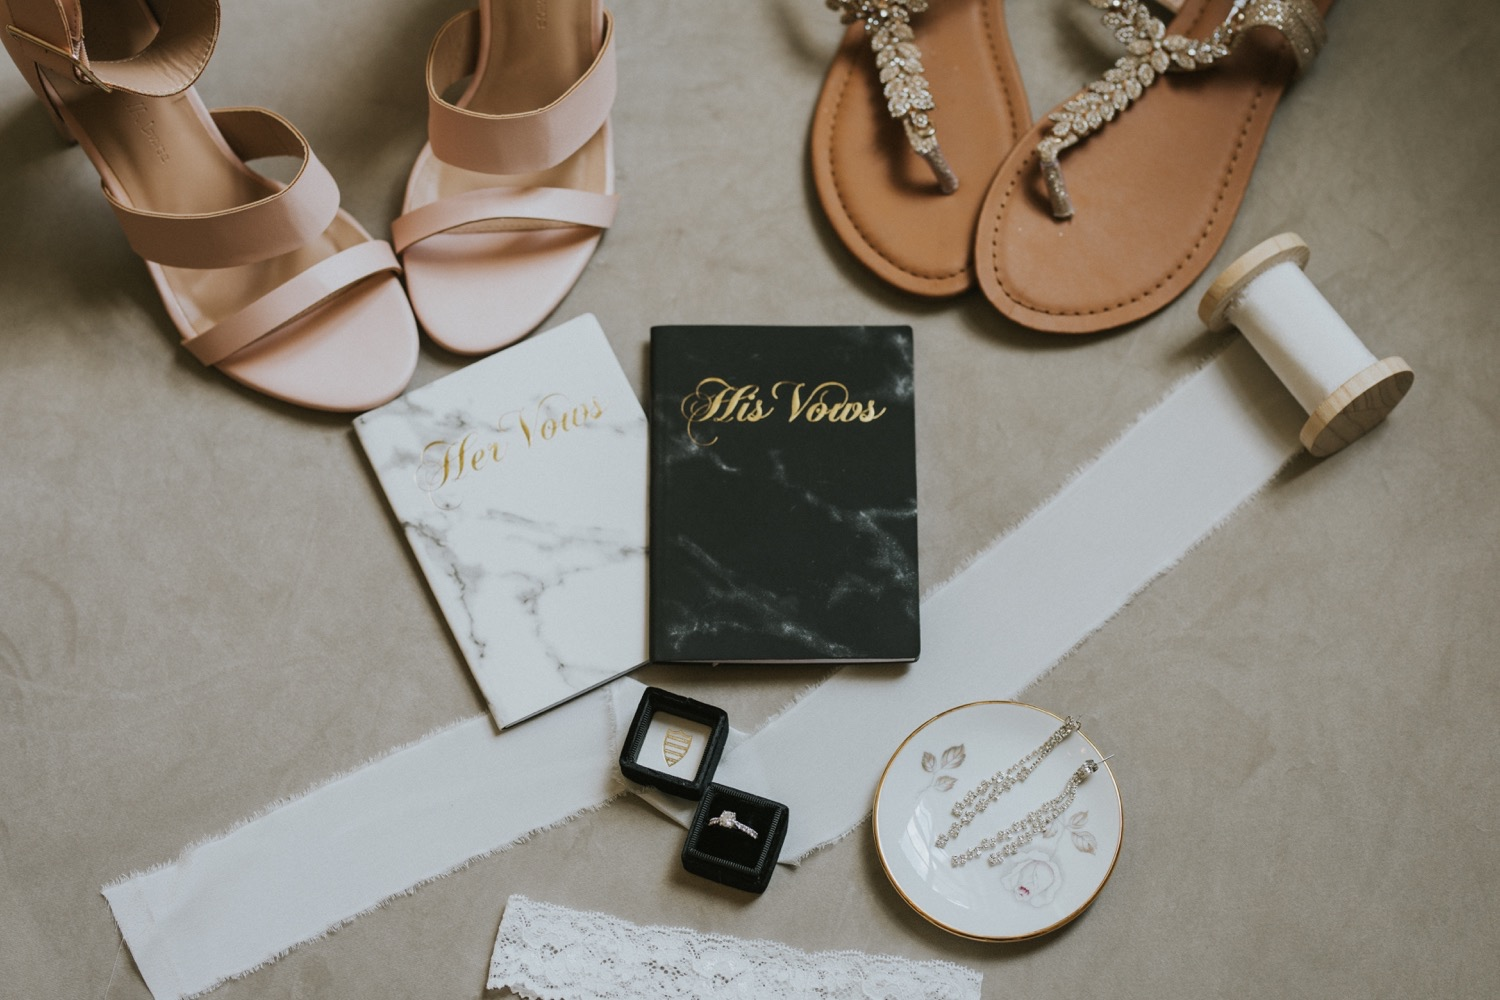 hudson valley wedding photographer, hudson valley wedding, unionville vineyards, unionville wedding, unionville vineyards wedding, wedding details, wedding invite flat lay, new jersey wedding